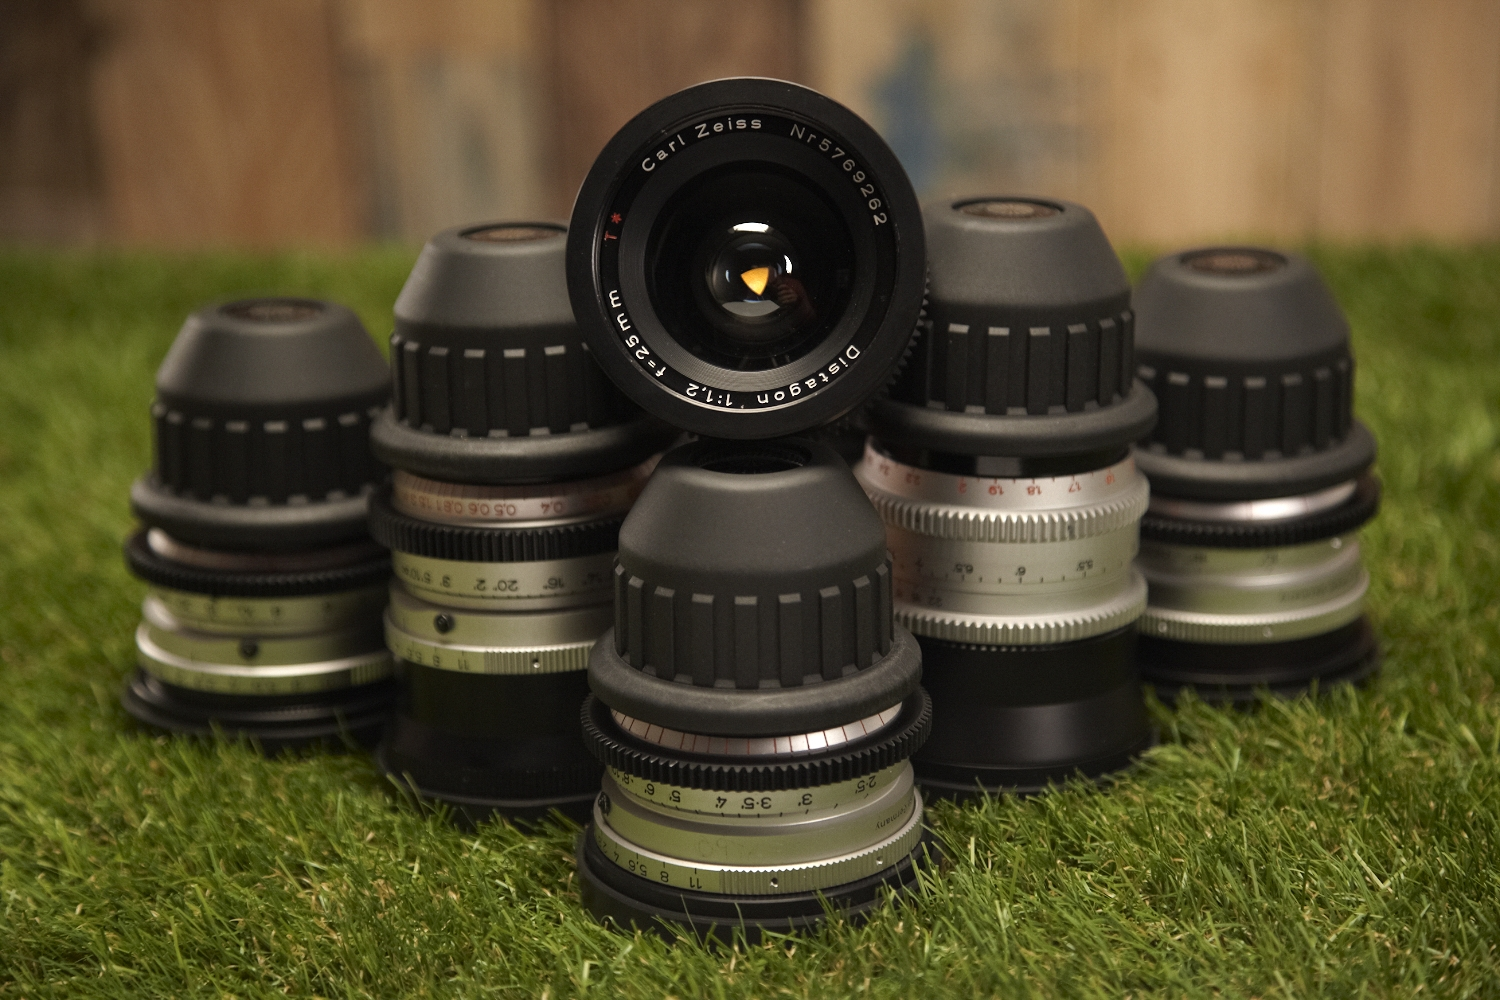 Zeiss B-Speeds MKI T1.3. UNCOATED.    18mm  CF 0,25m -  25mm  CF 0,25m -  35mm  CF 0,35m -  50mm  CF 0,7m -  85mm  CF 1m  The set is supplementet by a  135mm  CF 1,5m Zeiss Standard T2.1. Also uncoated.  All 6 lenses have been through an uncoating process giving them a special character and a beatuiful flare.  Known for their triangular iris.